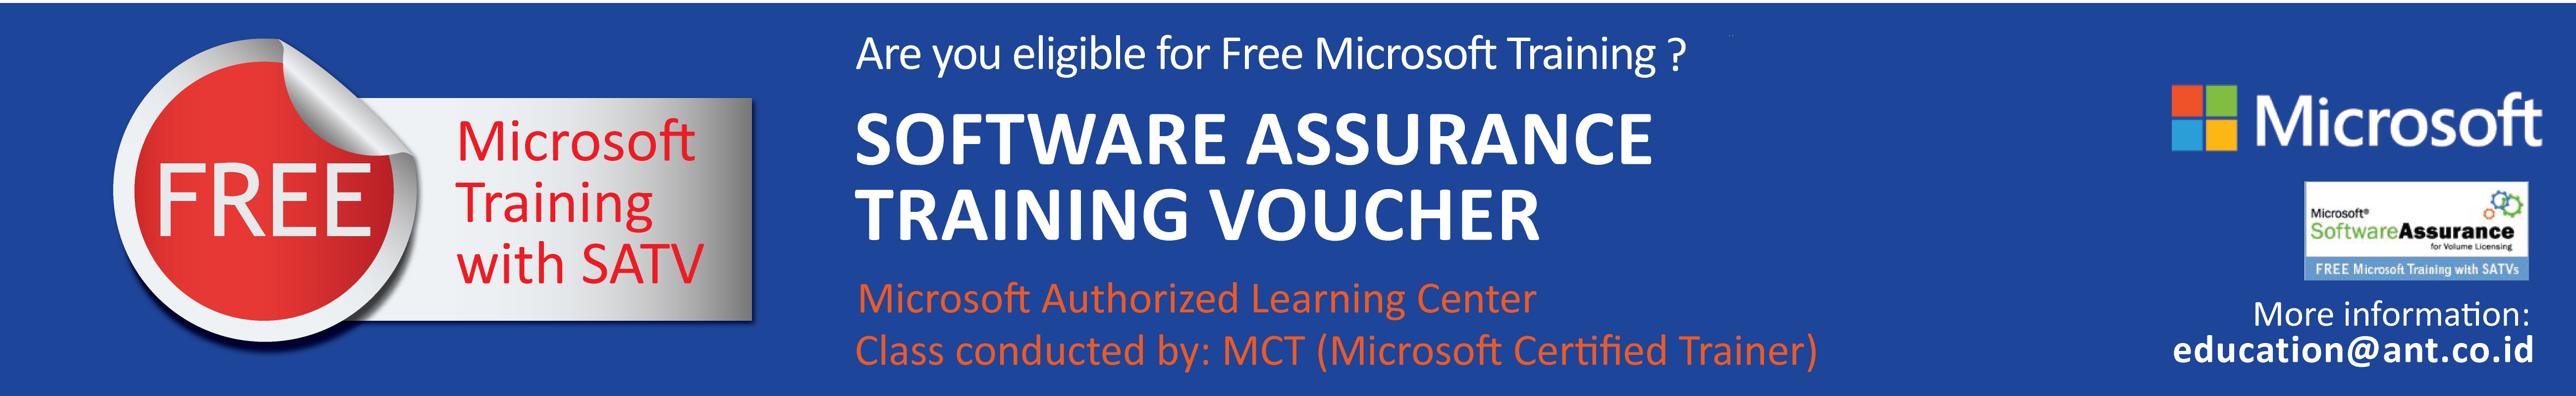 Free Trainings with Microsoft Vouchers